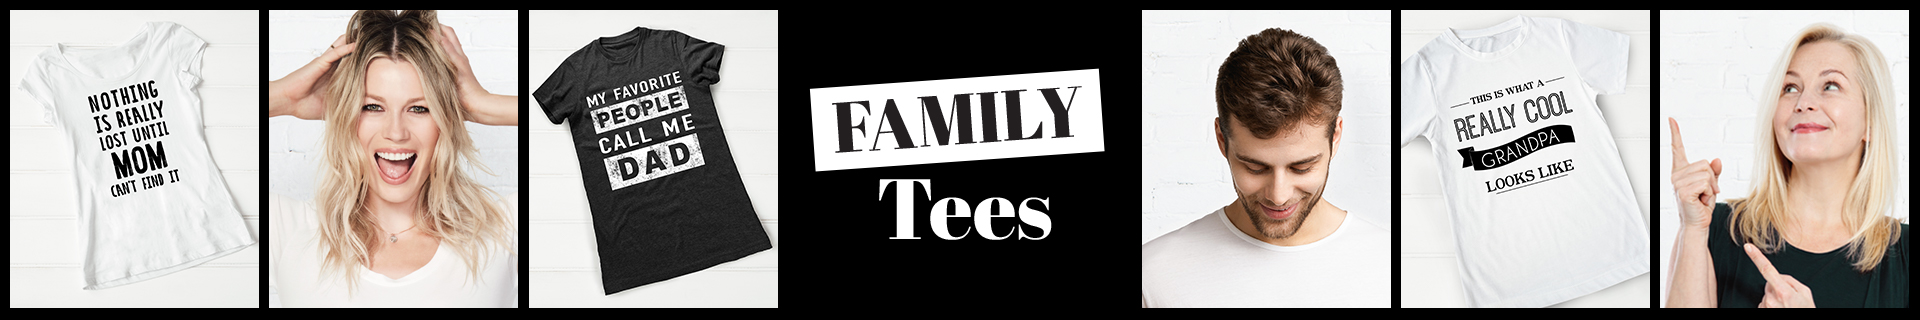 new arrivals - Family tees